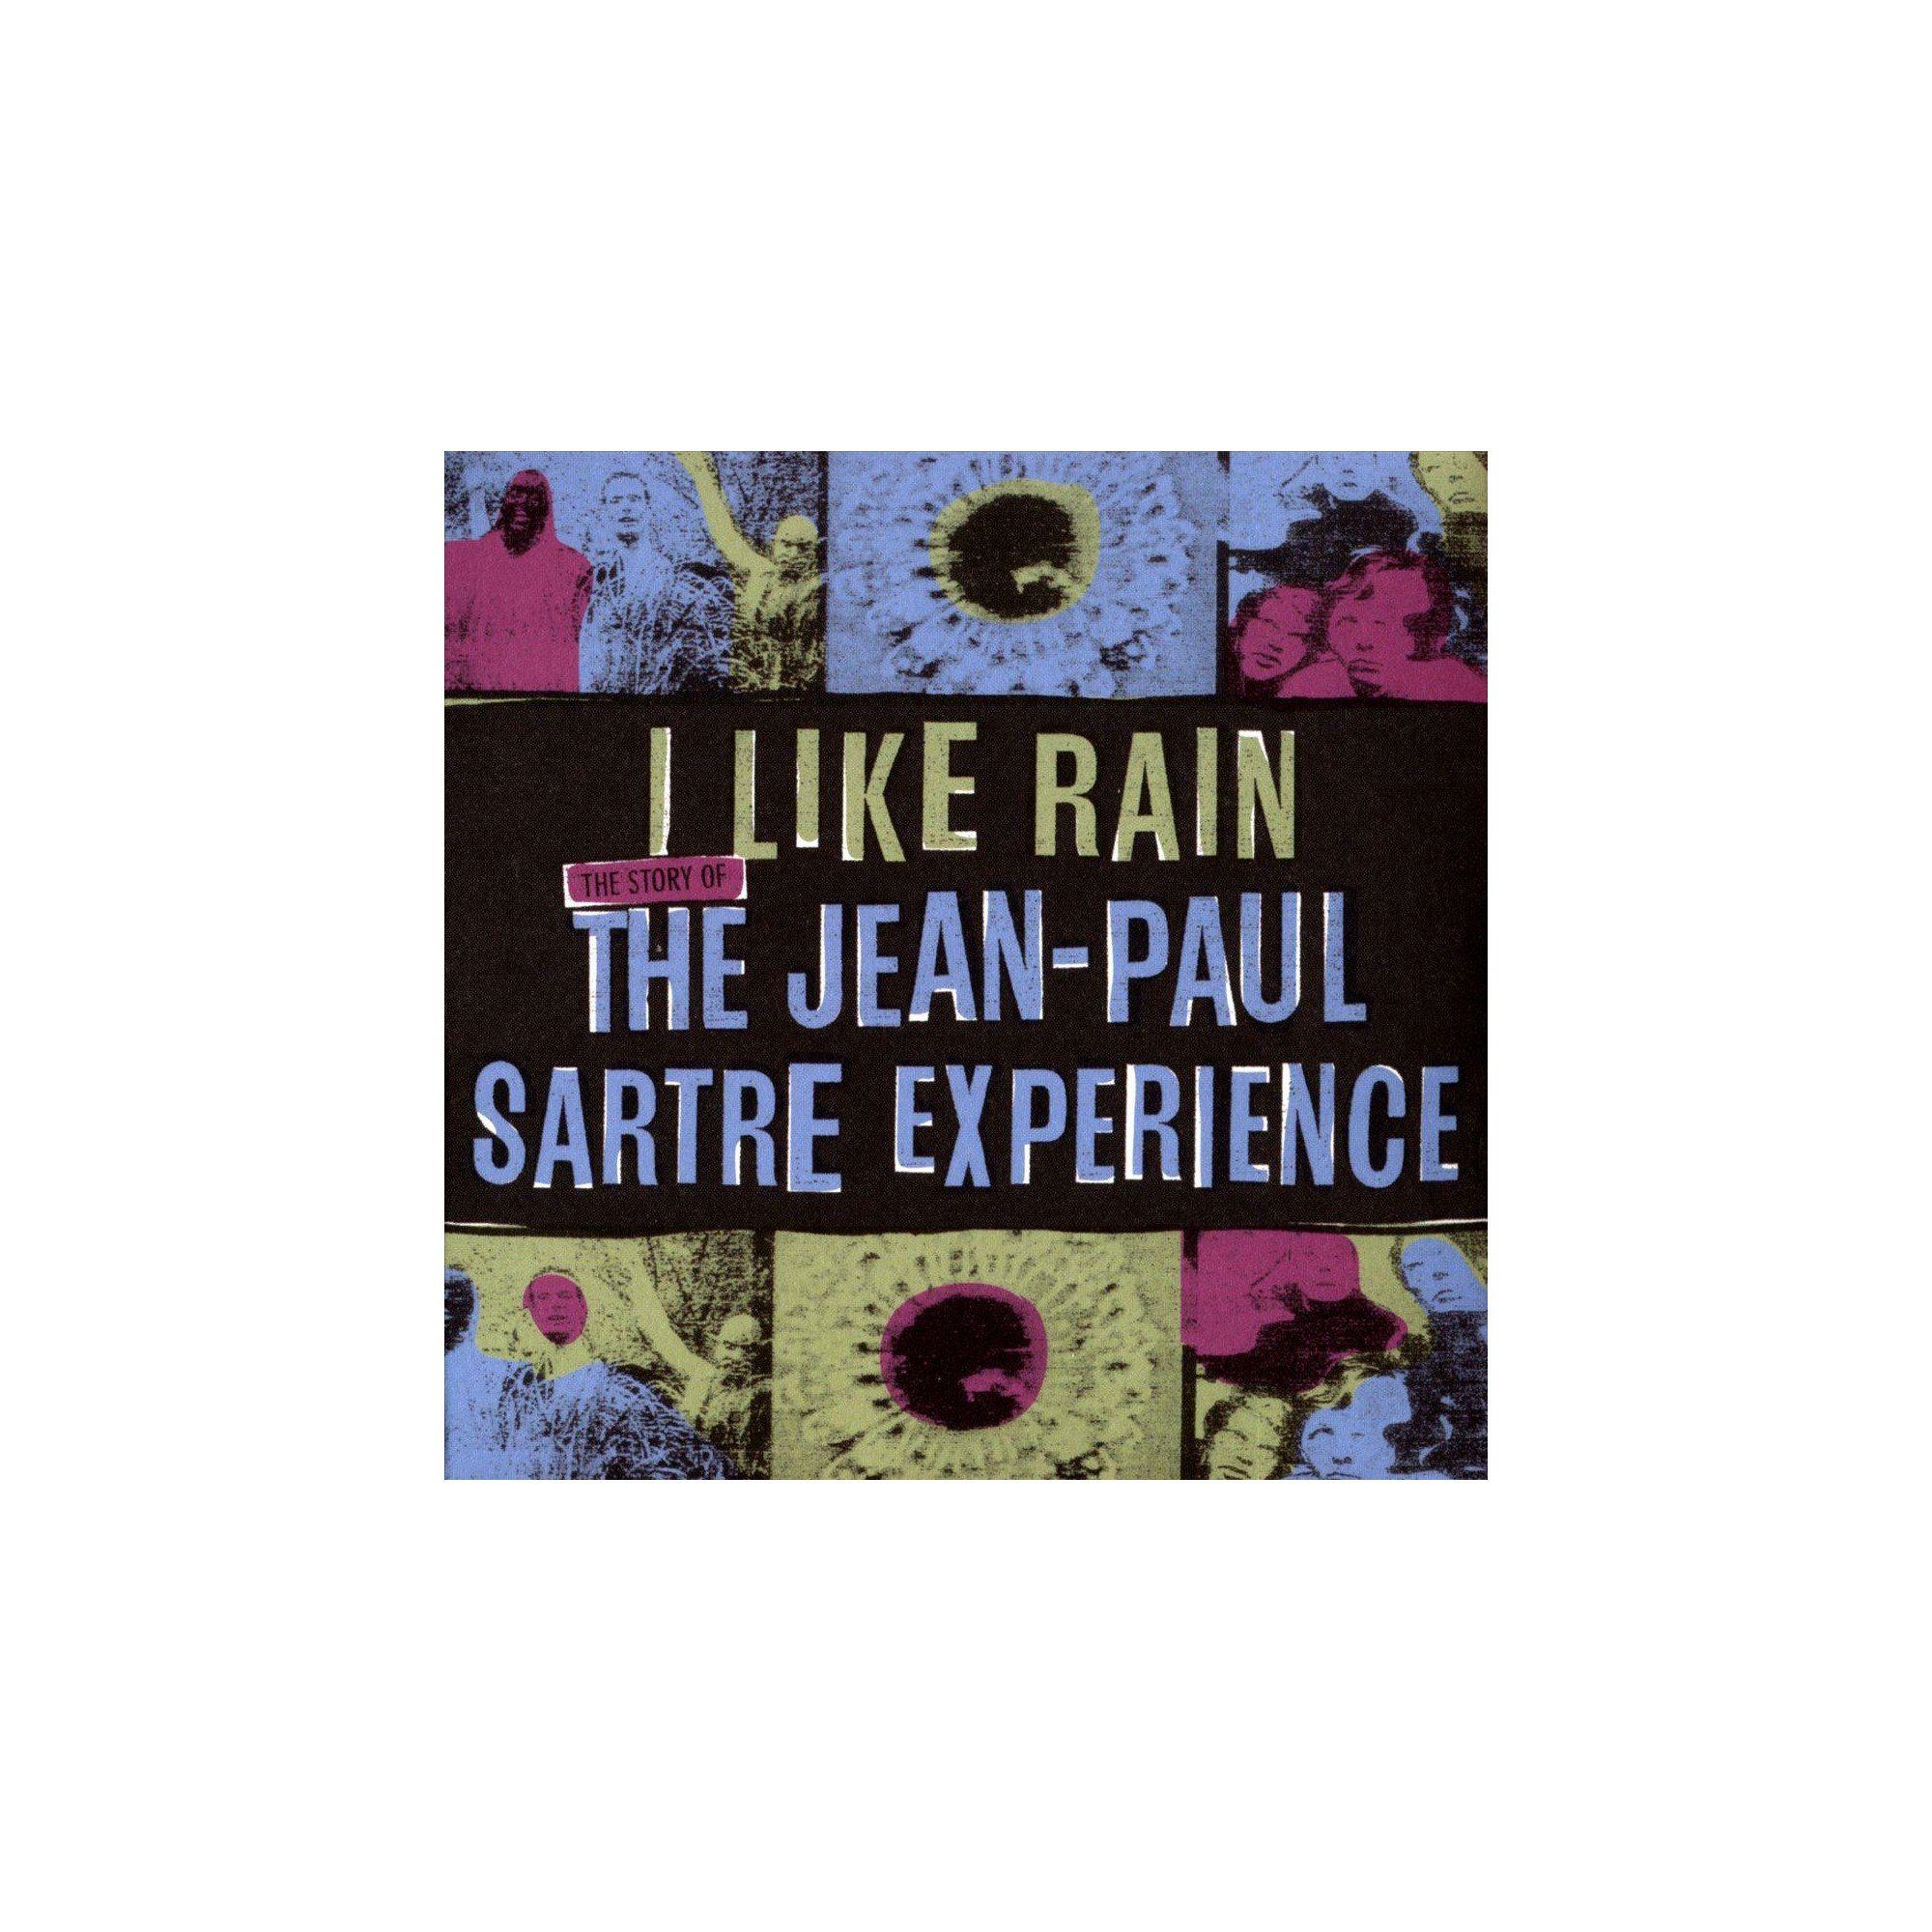 Jean-Paul Sartre Experience - I Like Rain: The Story Of The Jean-paul Sartre Experience (CD) #jeanpaulsartre